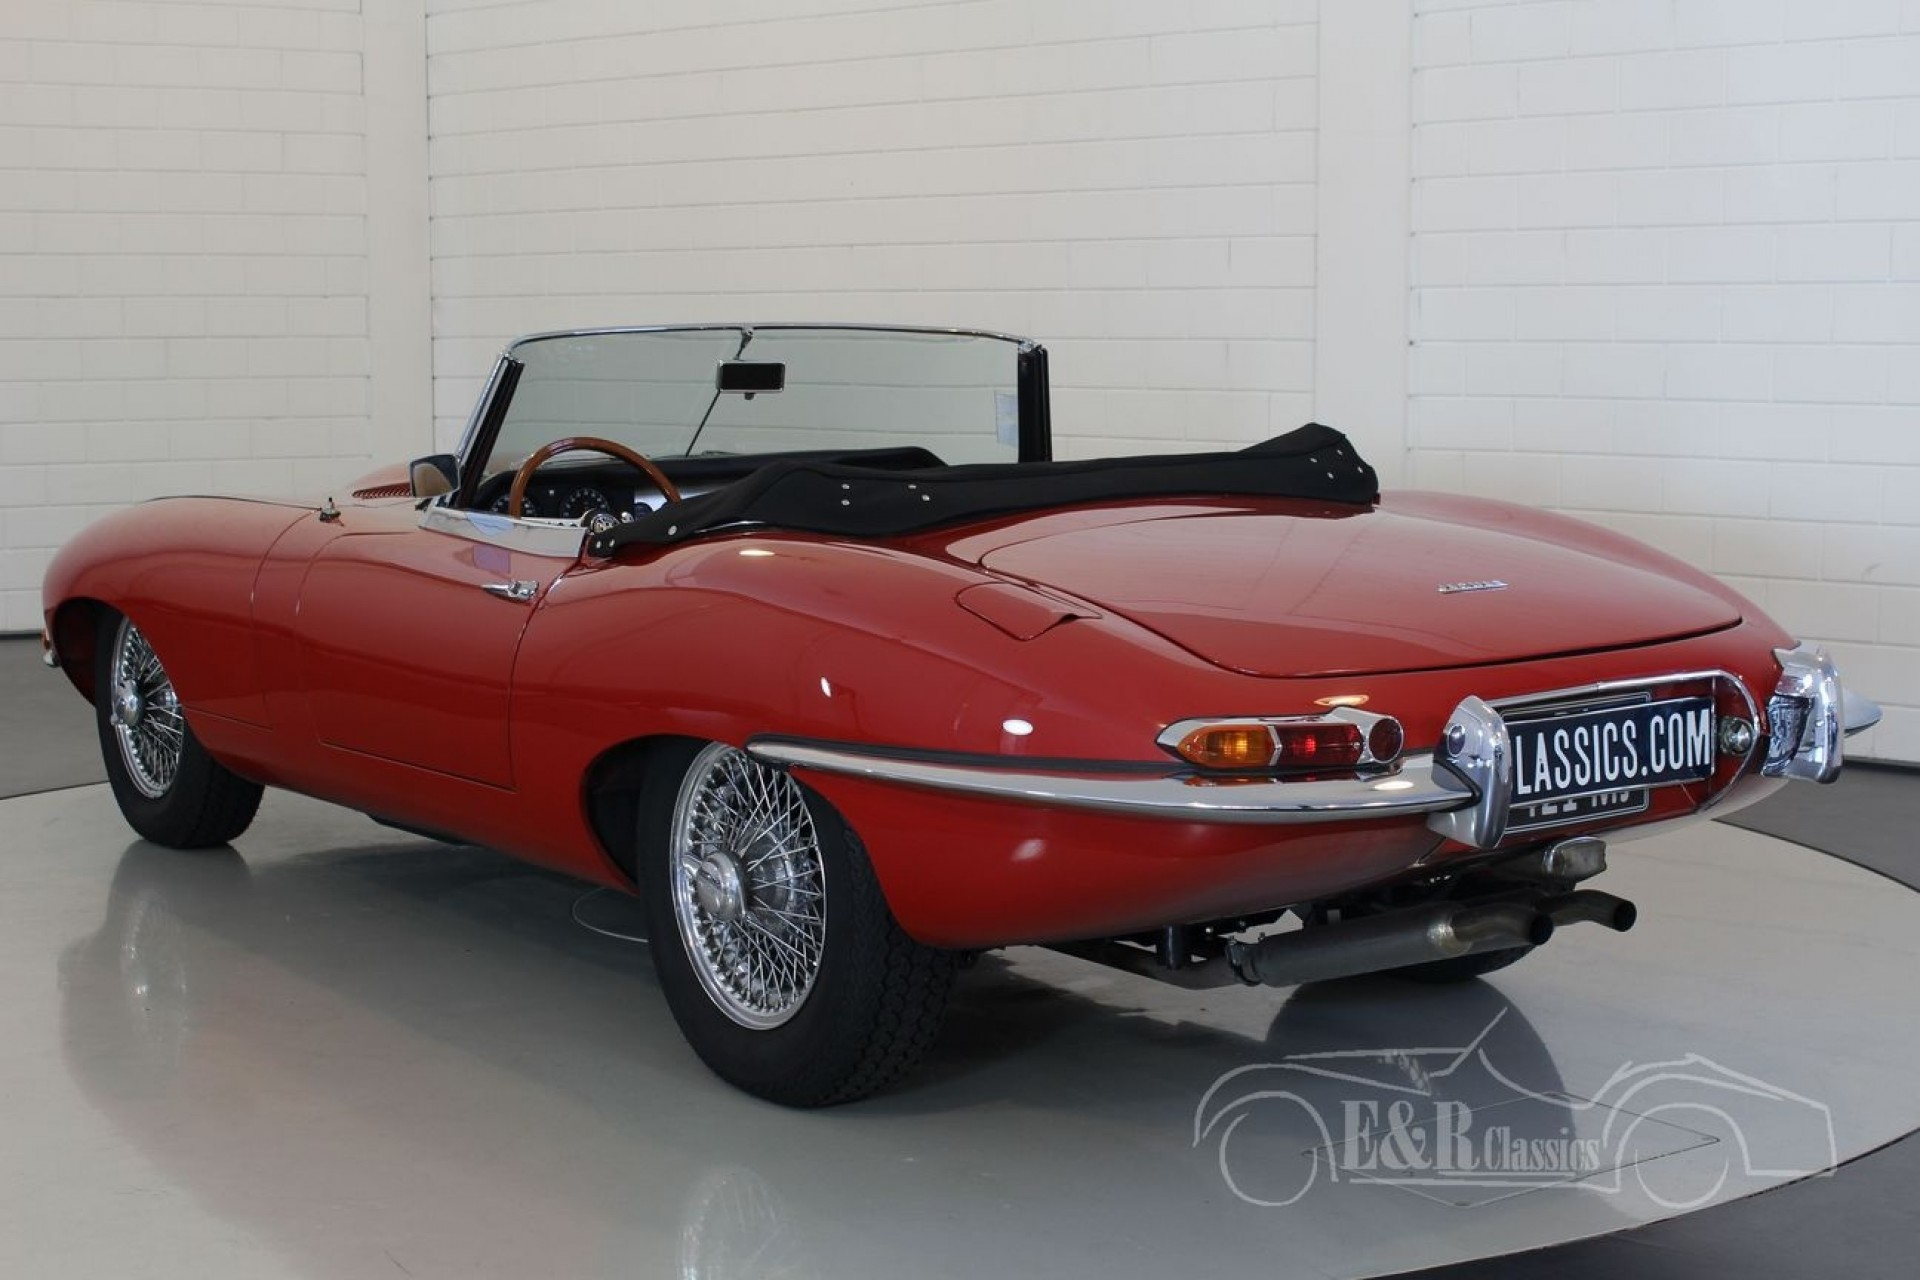 jaguar e type series 1 cabriolet 1962 vendre erclassics. Black Bedroom Furniture Sets. Home Design Ideas